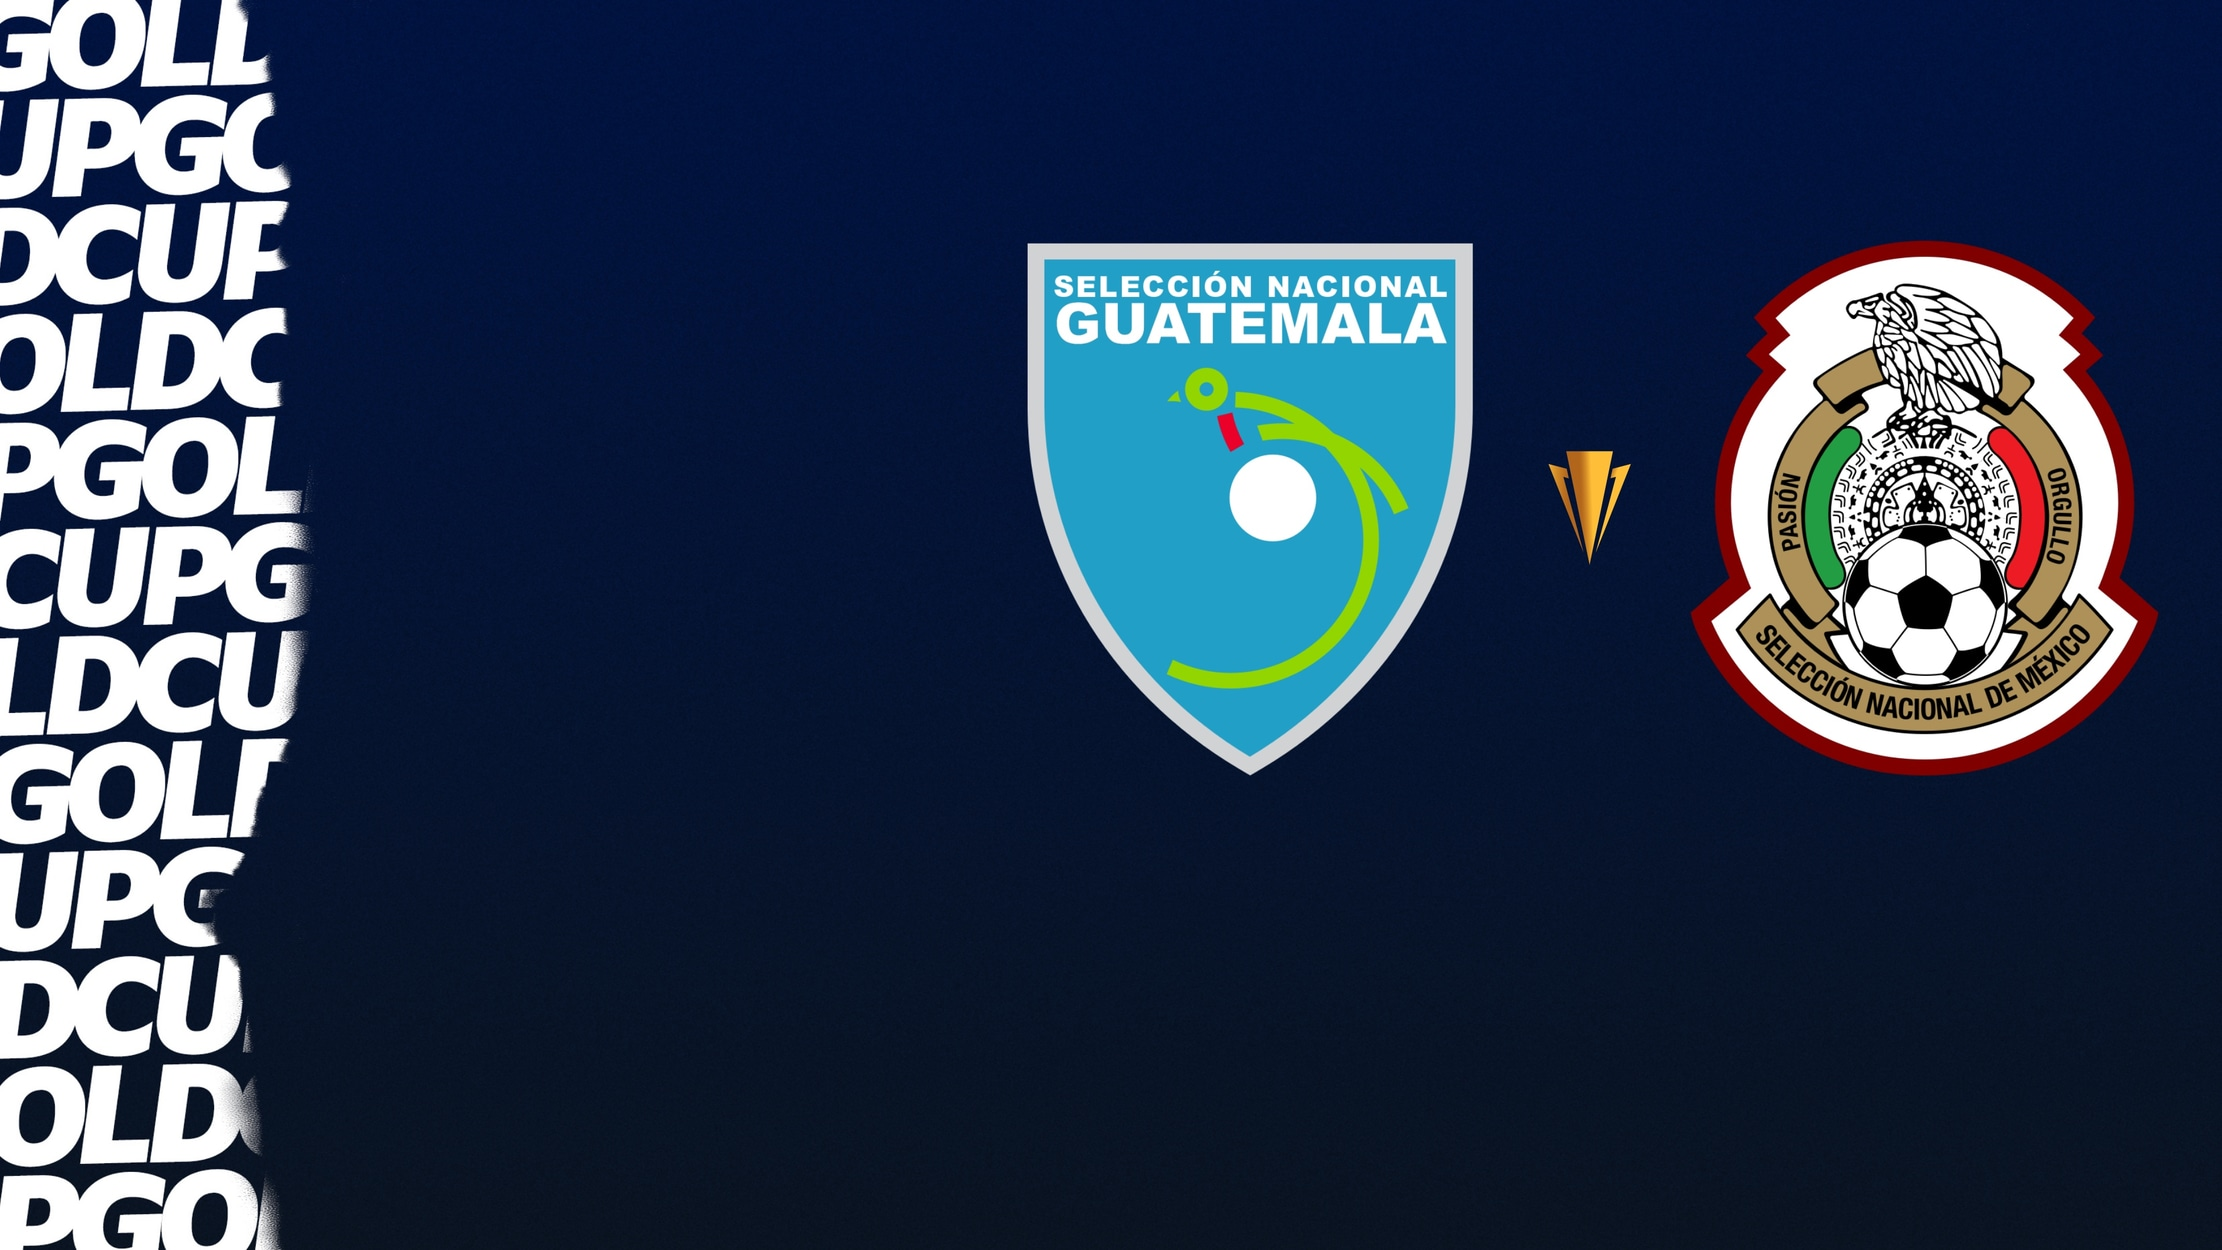 2021 CONCACAF Gold Cup - Guatemala vs. Mexico seriesDetail